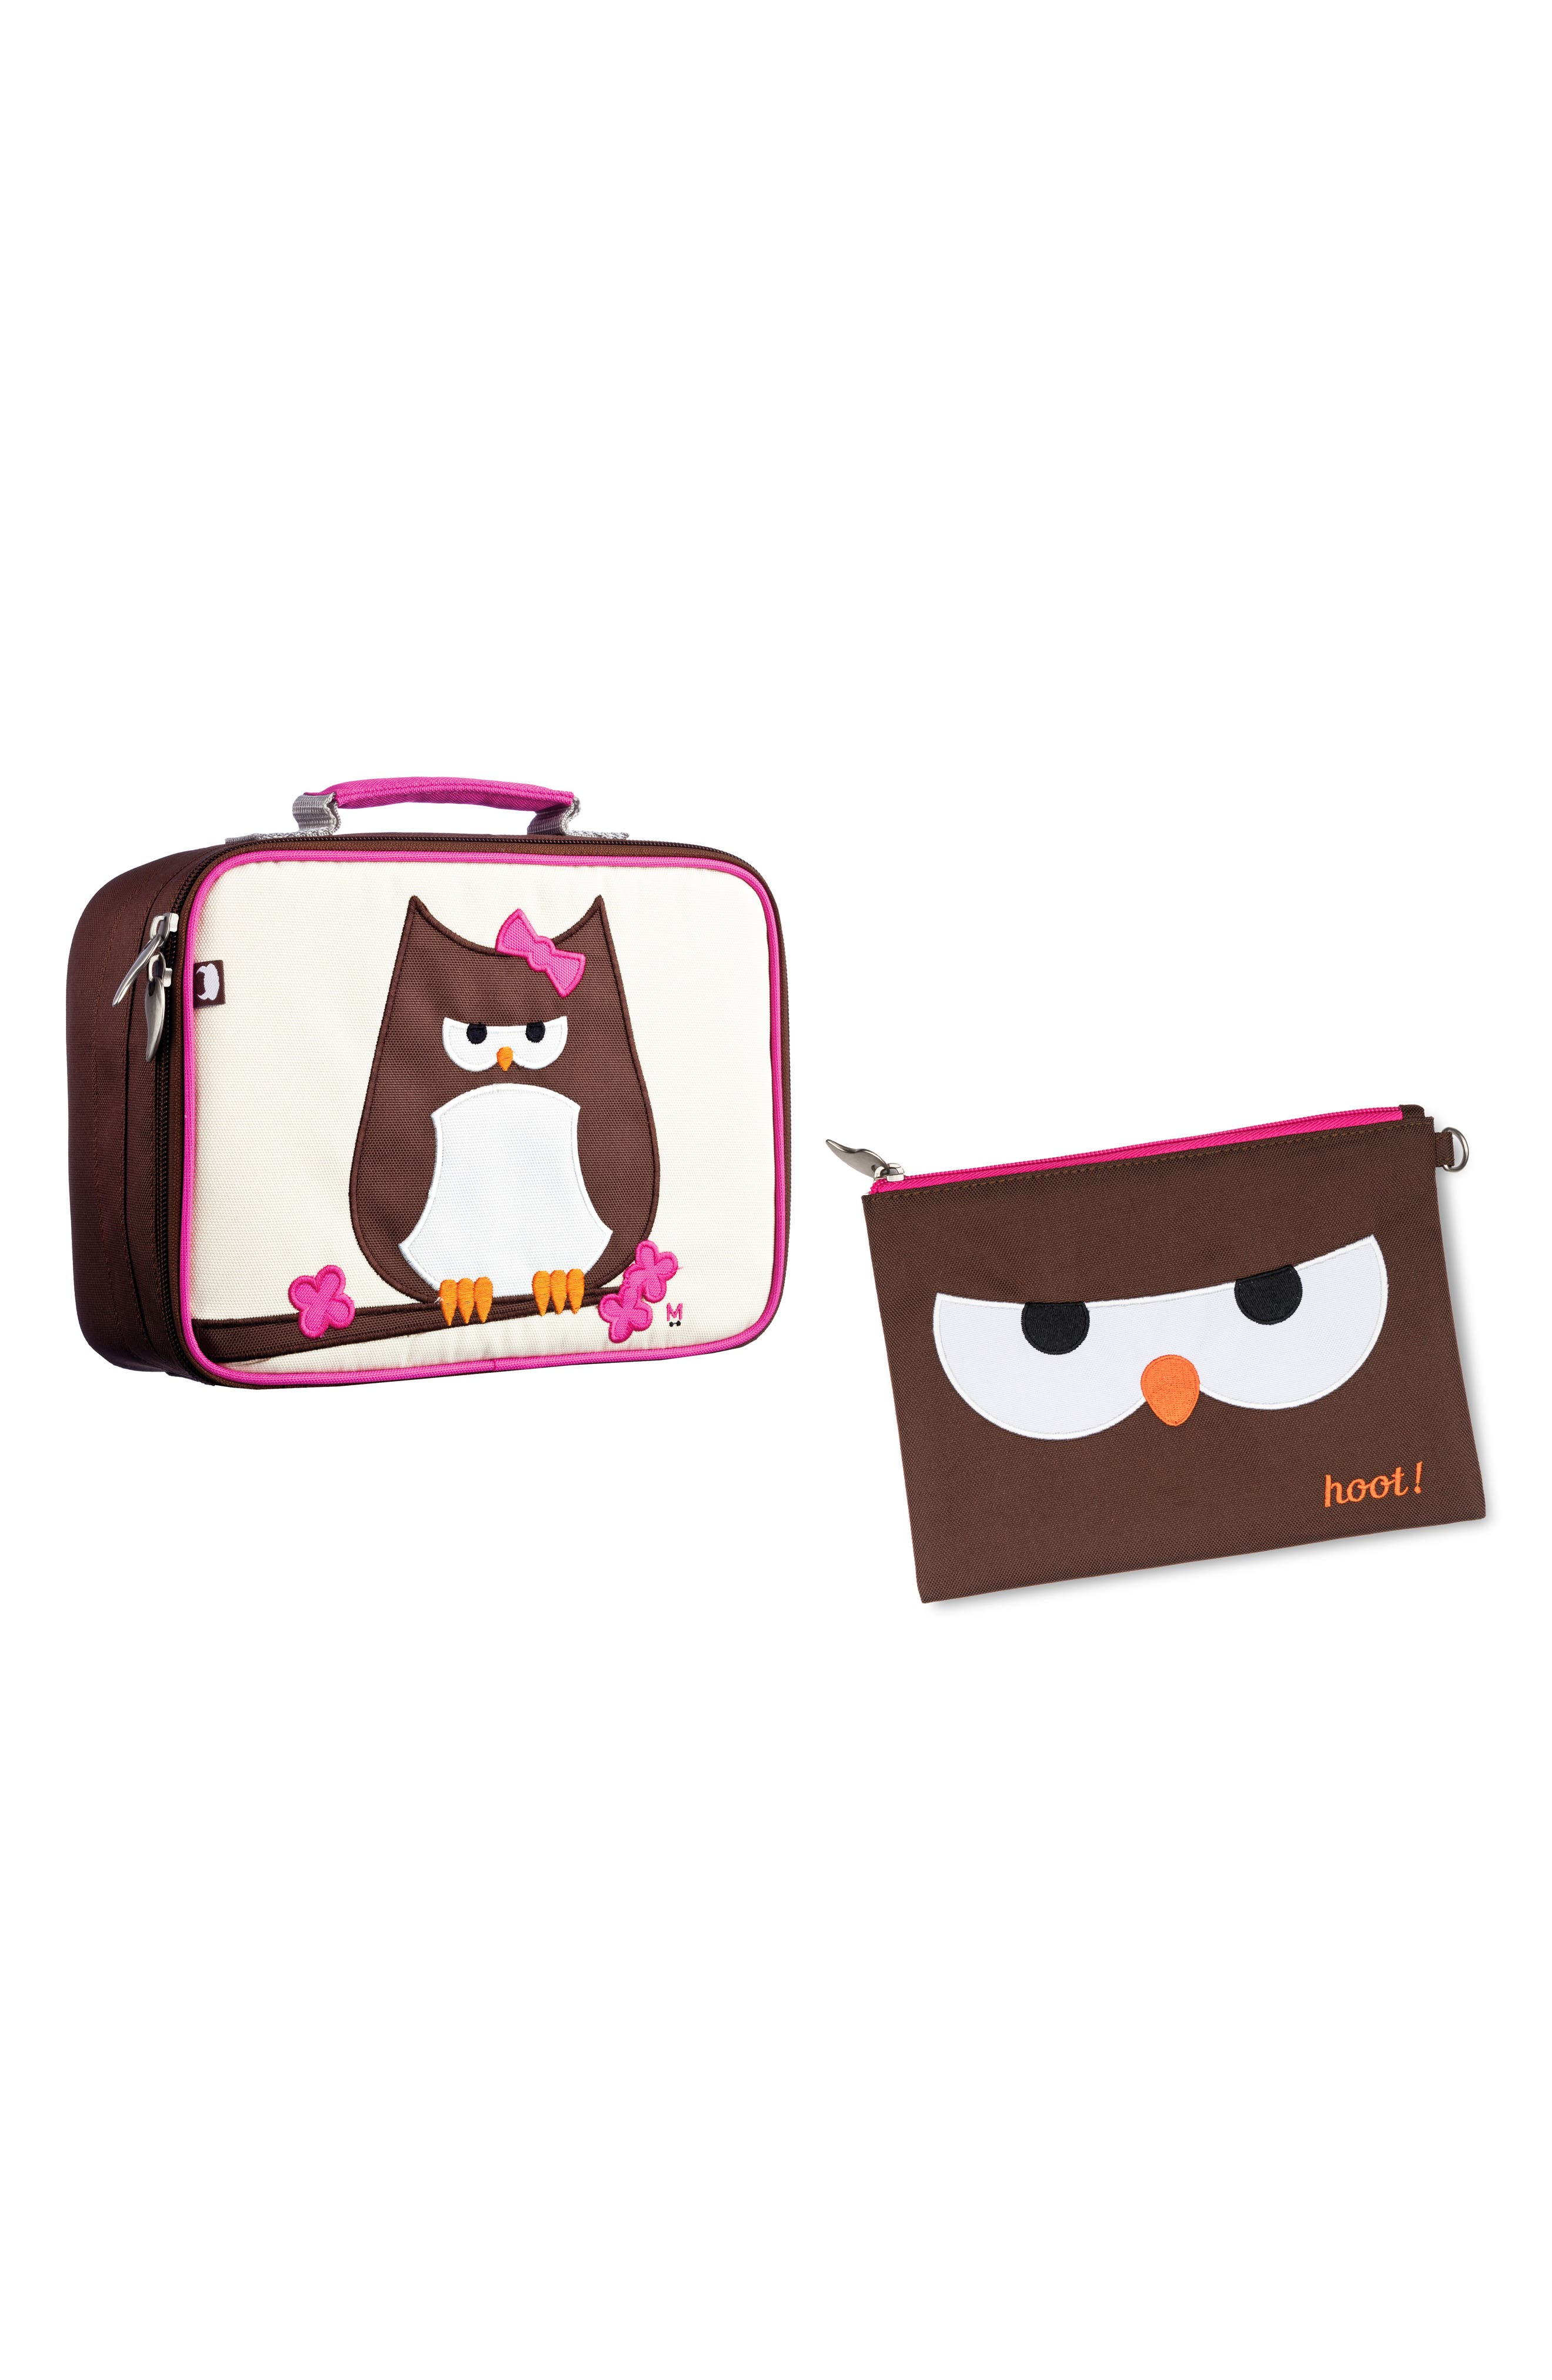 Lunch Box & Travel Pouch Set,                         Main,                         color,